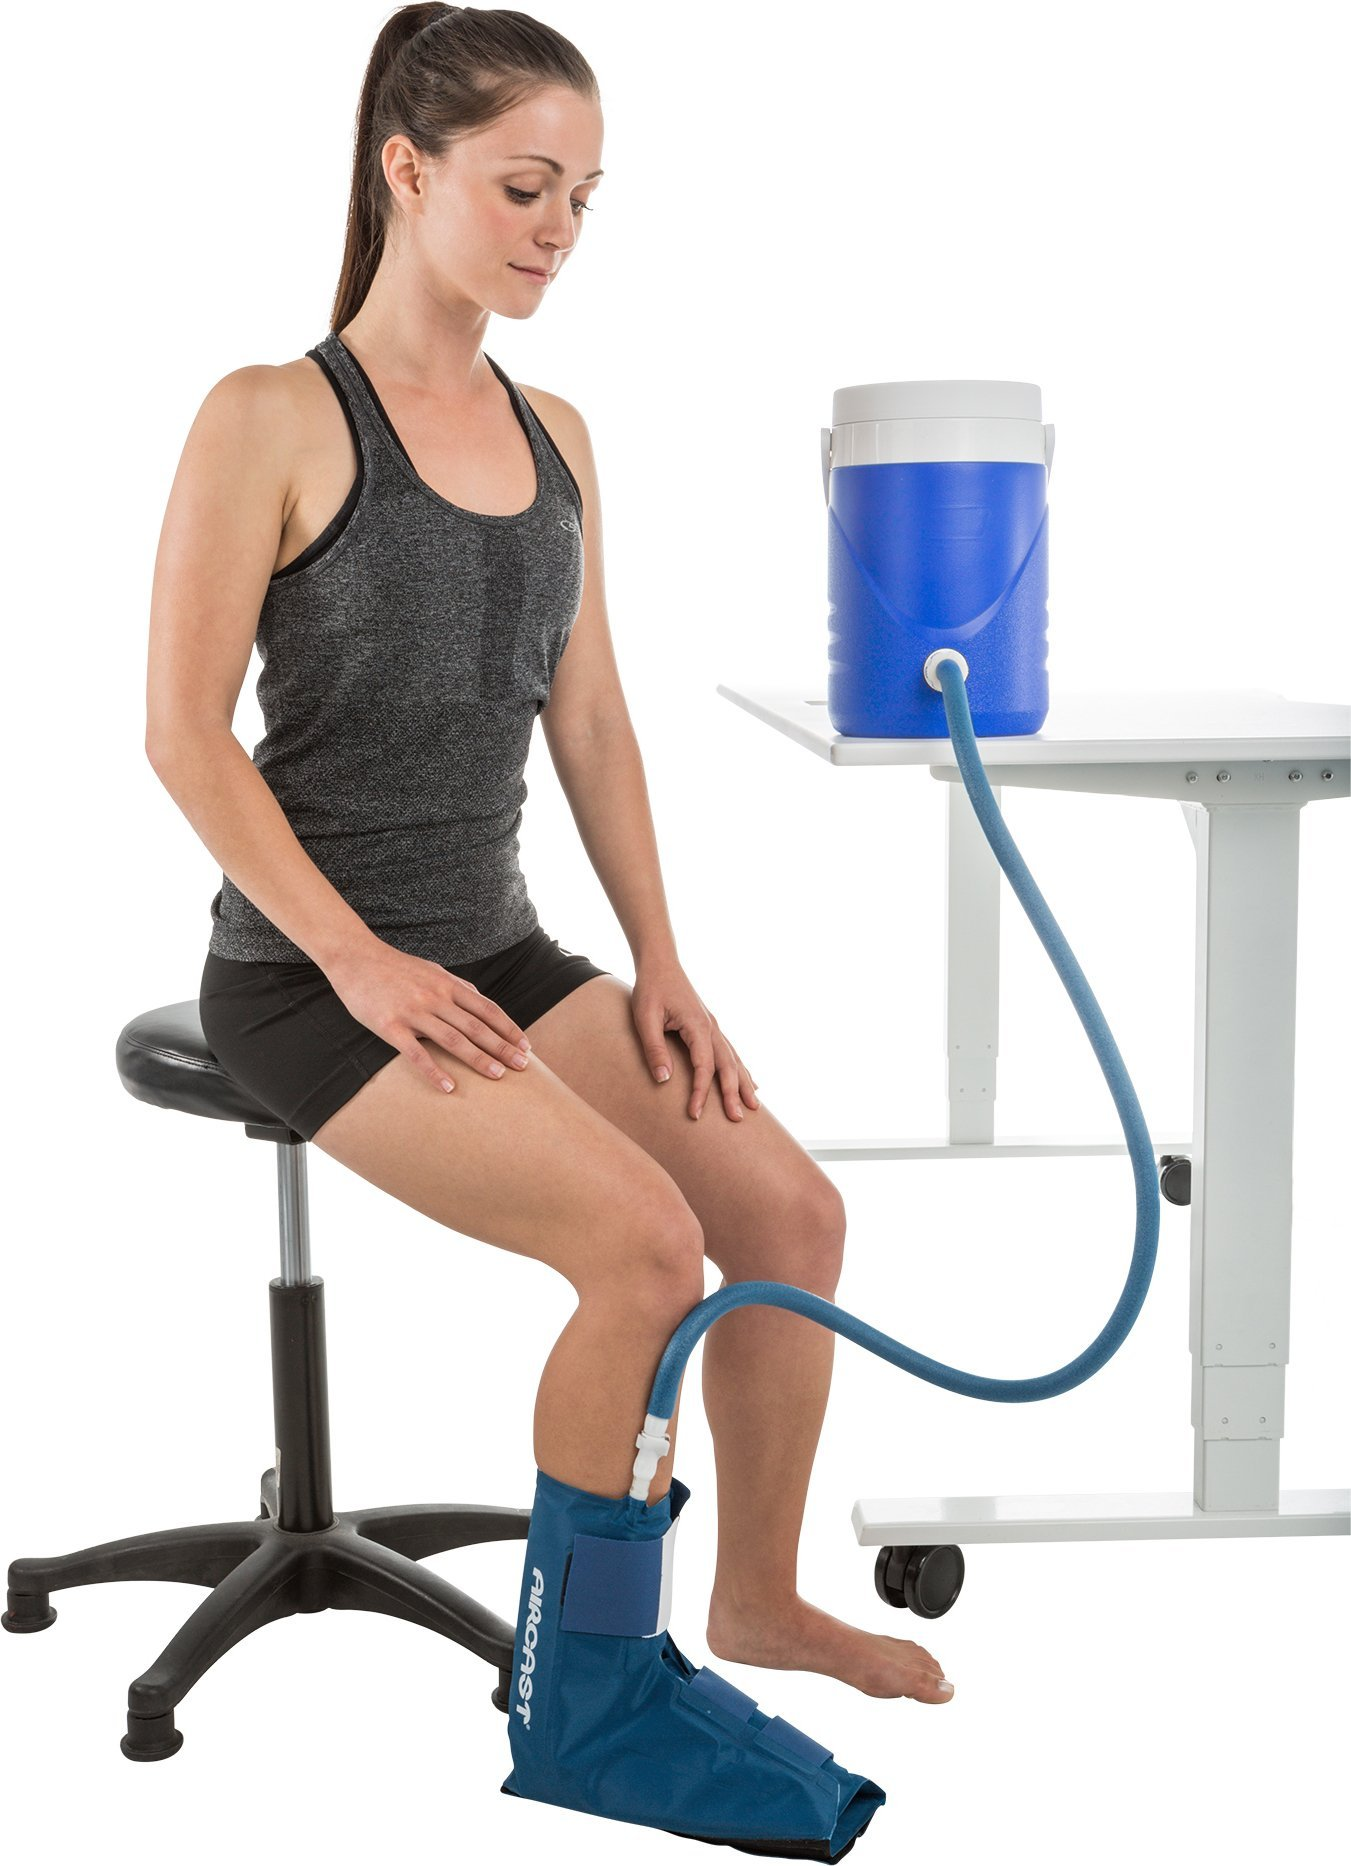 Aircast Cryo/Cuff Cold Therapy: Ankle Cryo/Cuff with Non-Motorized (Gravity-Fed) Cooler, One Size Fits Most by Aircast (Image #4)